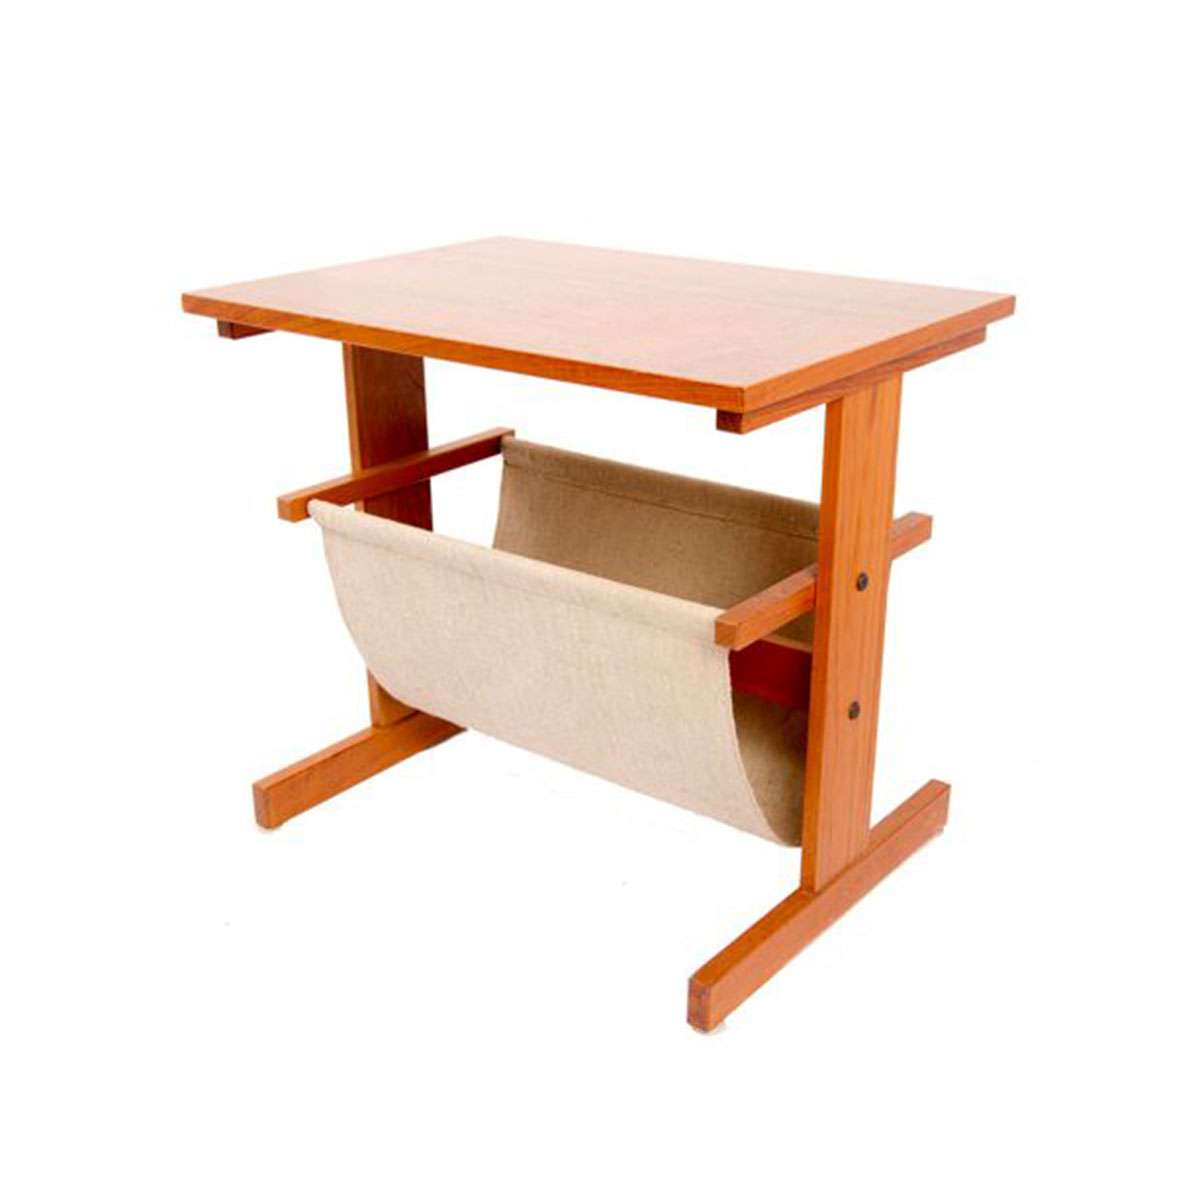 Combination Danish Modern Teak Magazine Holder / Side Table